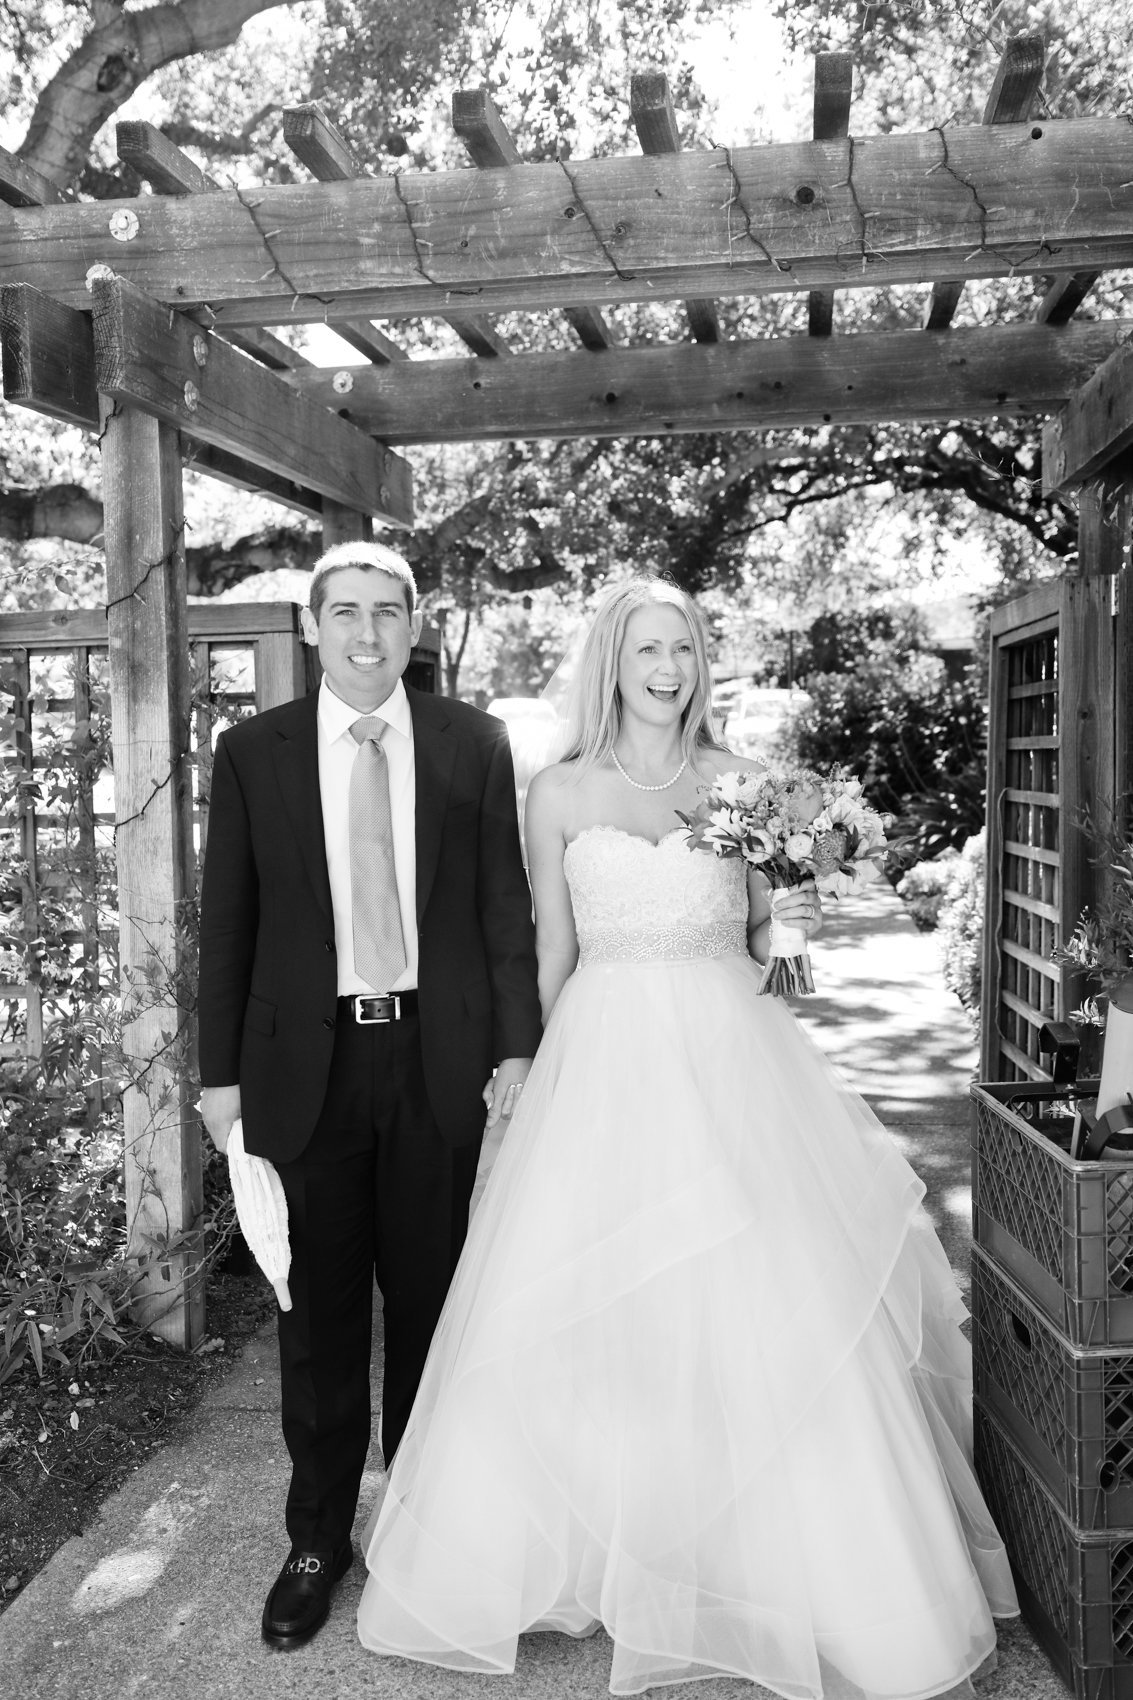 Bride and groom portrait california wedding black and white photography couple love